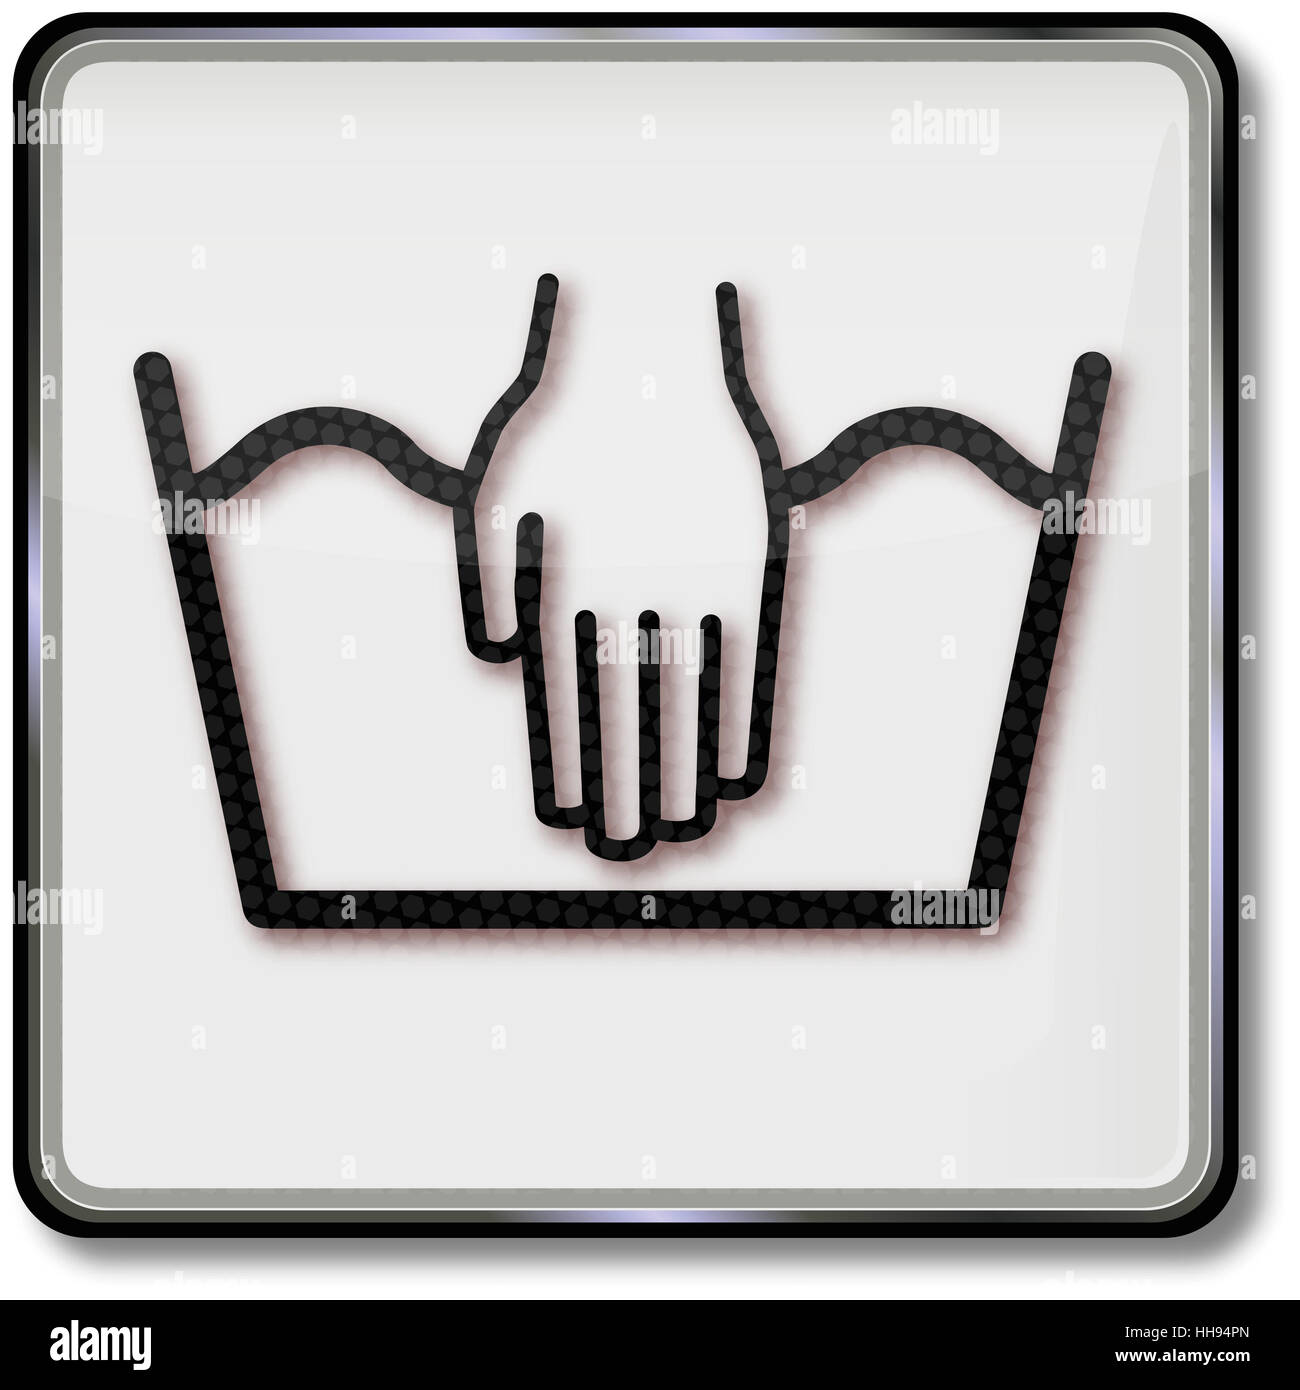 Laundry symbol hand wash stock photo royalty free image 131123069 laundry symbol hand wash buycottarizona Image collections